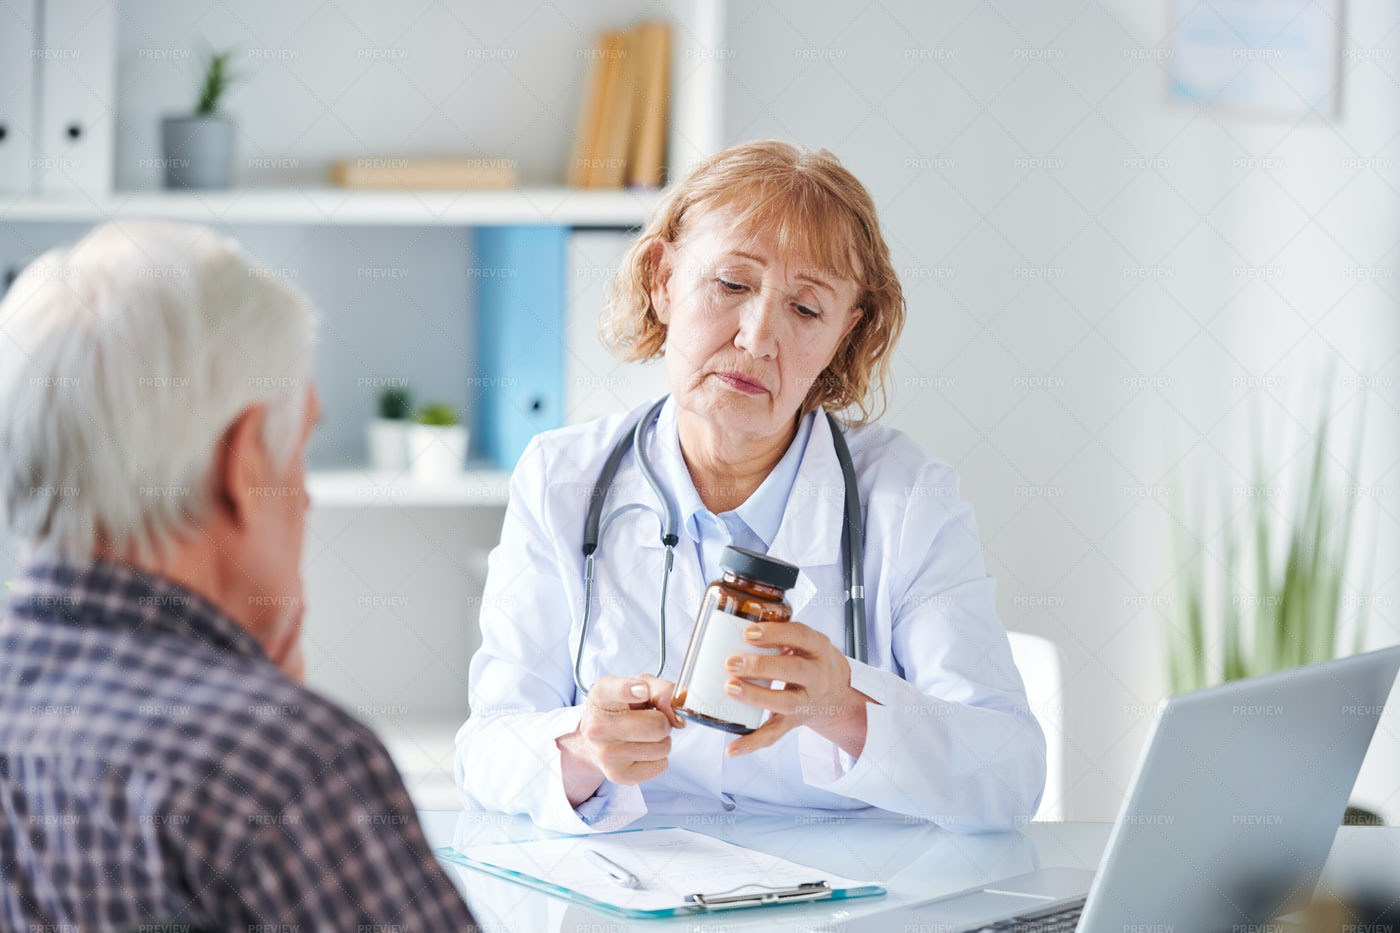 Young Should Take This Medicine: Stock Photos